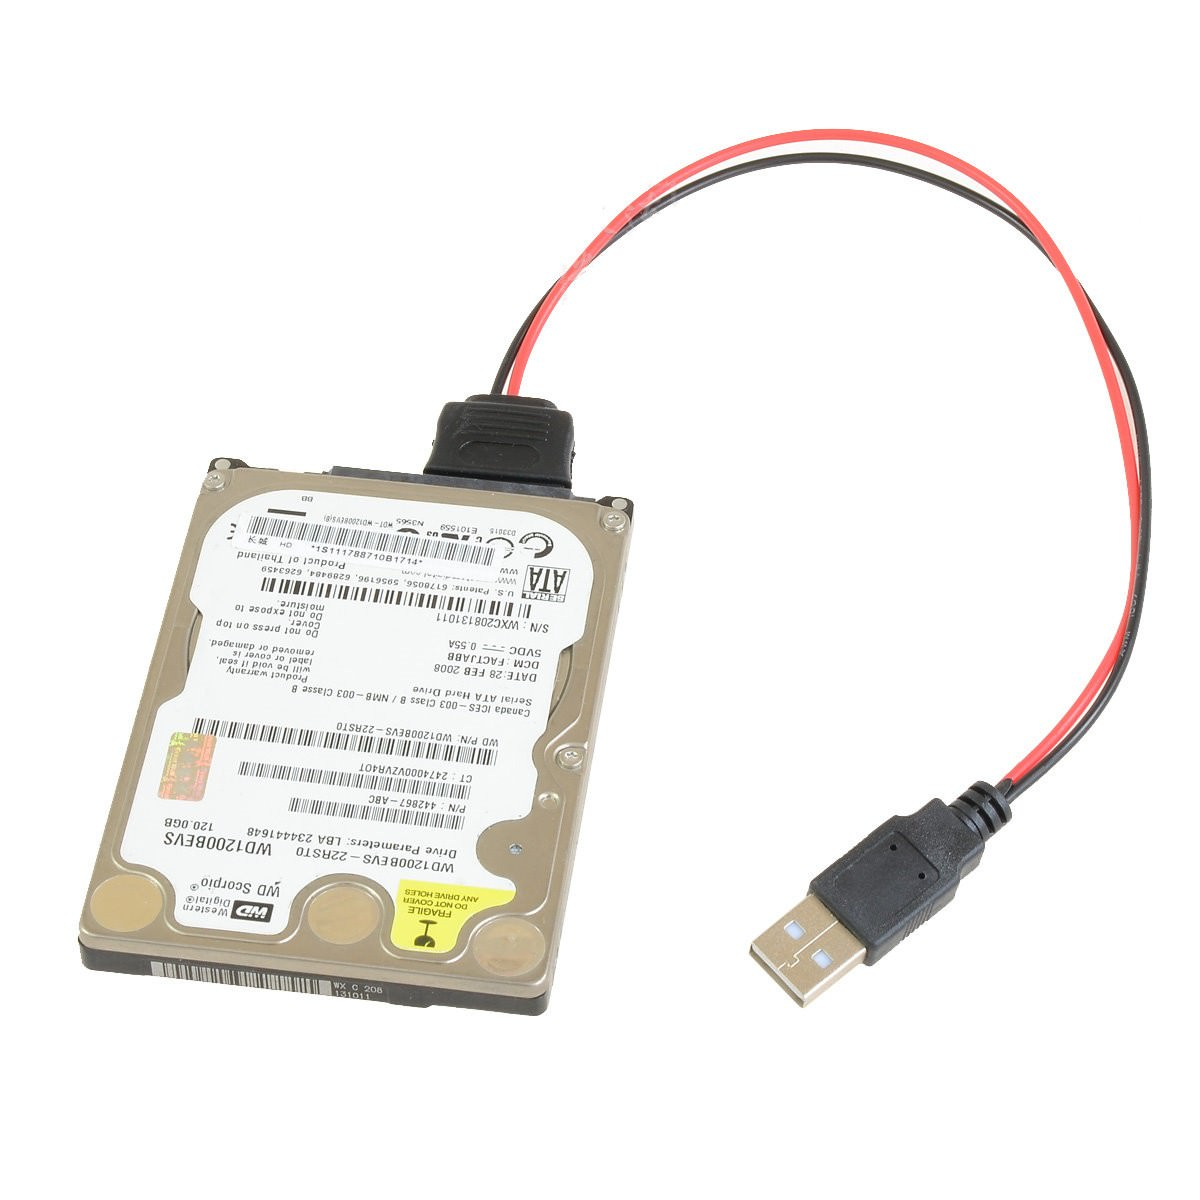 Hdd To Usb Wiring Diagram Another Blog About 10 Inch Rockford Fosgate Sub 2 5 Ssd Pin Sata Power Adapter Cable 20cm Moddiy Com Rh